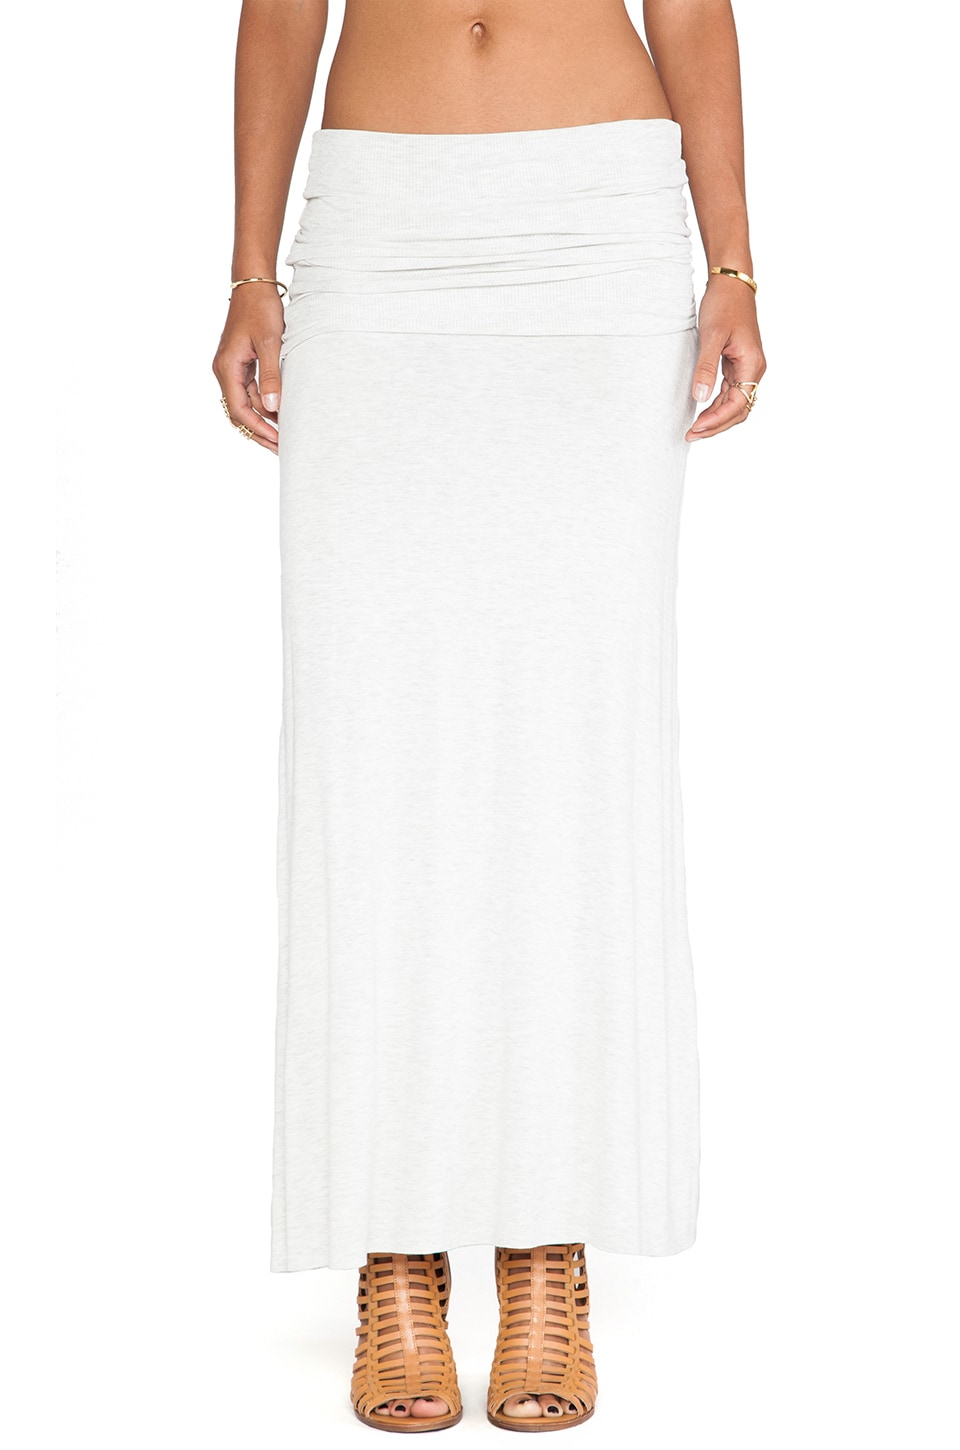 Blue Life Fold Me Over Skirt in Silver Silk Sheets